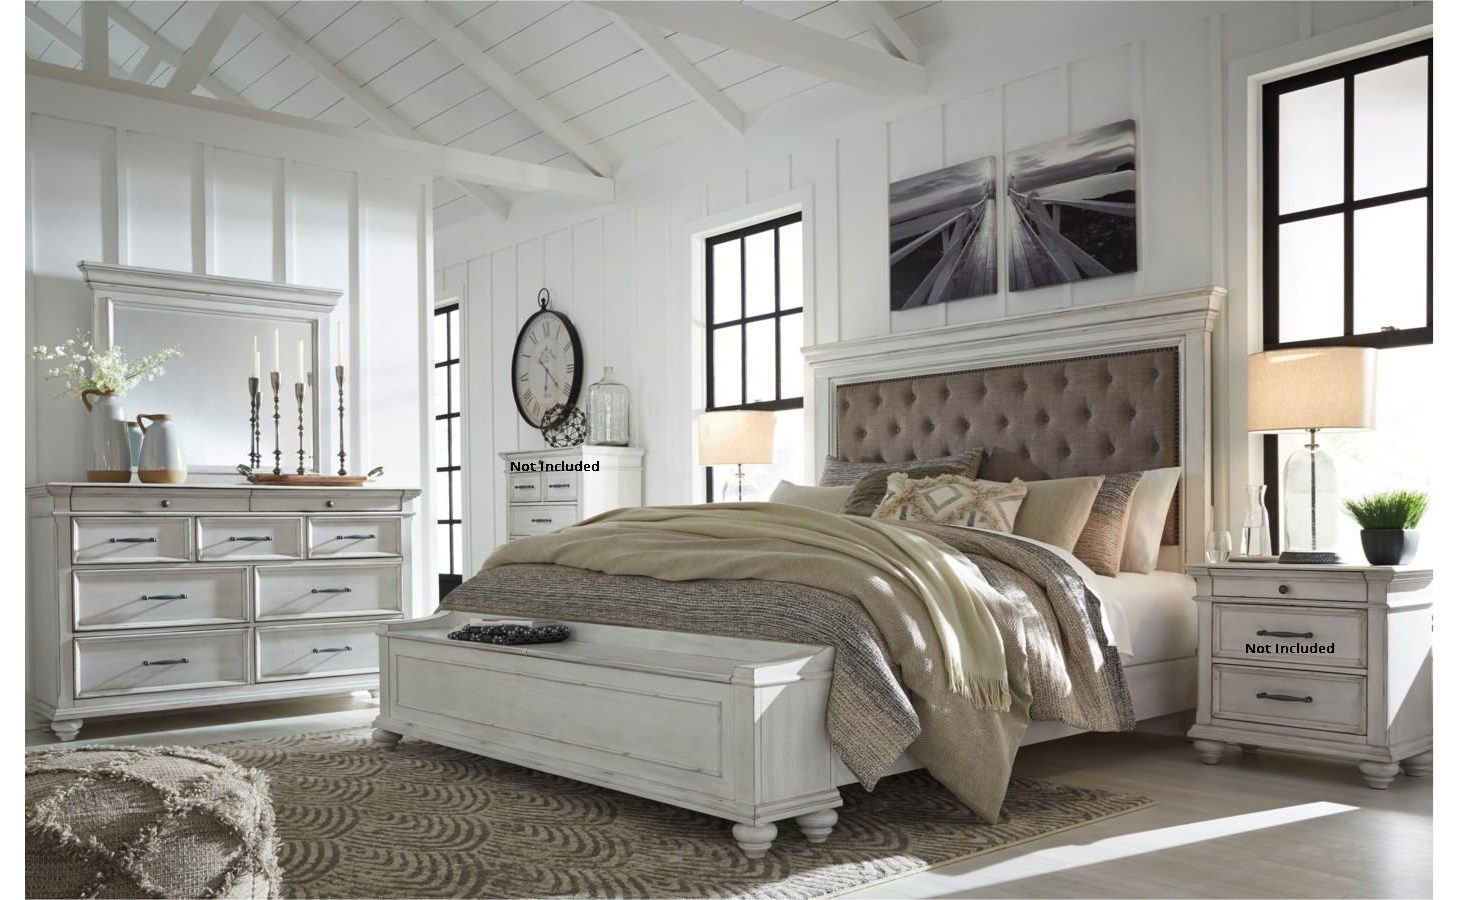 Kanwyn Queen Bedroom Group by Benchcraft at Virginia Furniture Market